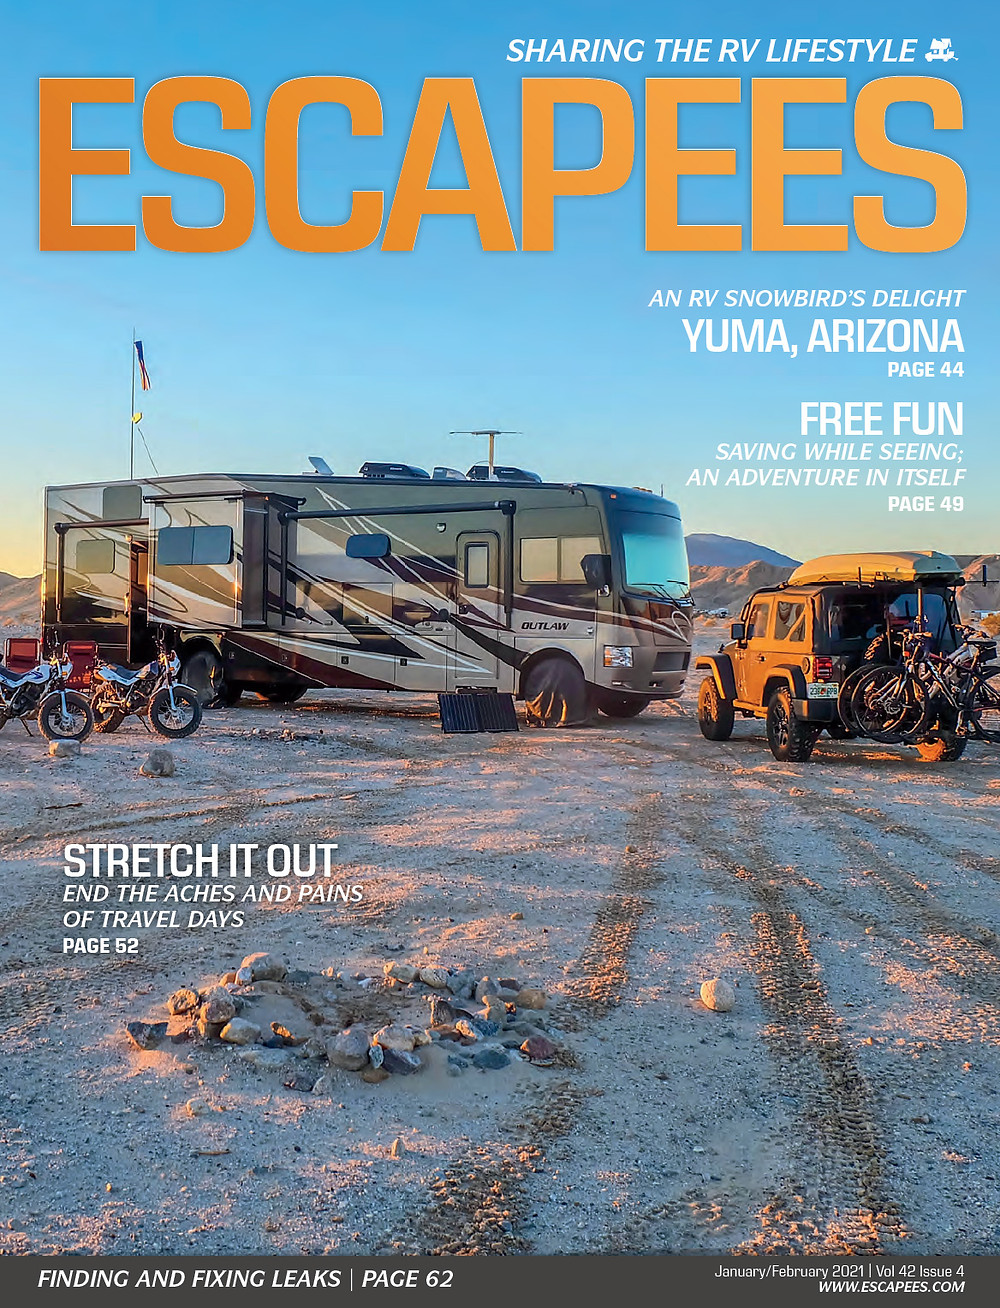 RV Yoga: Escapees RV Club Magazine Stretch It Out Article by Therese Julo